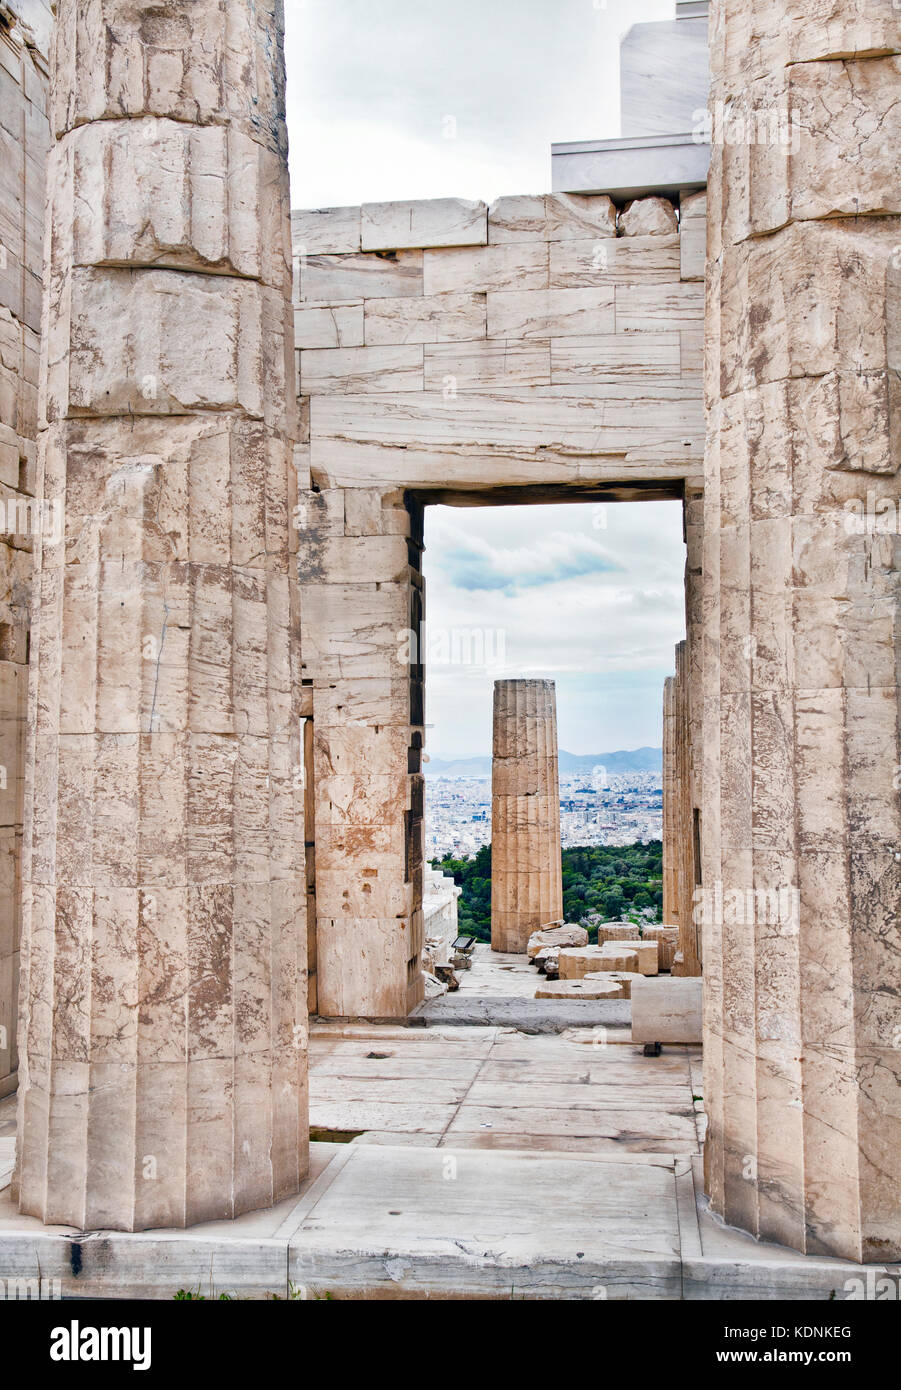 Marble remains of walls and columns  located in the Acropolis of Athens. - Stock Image